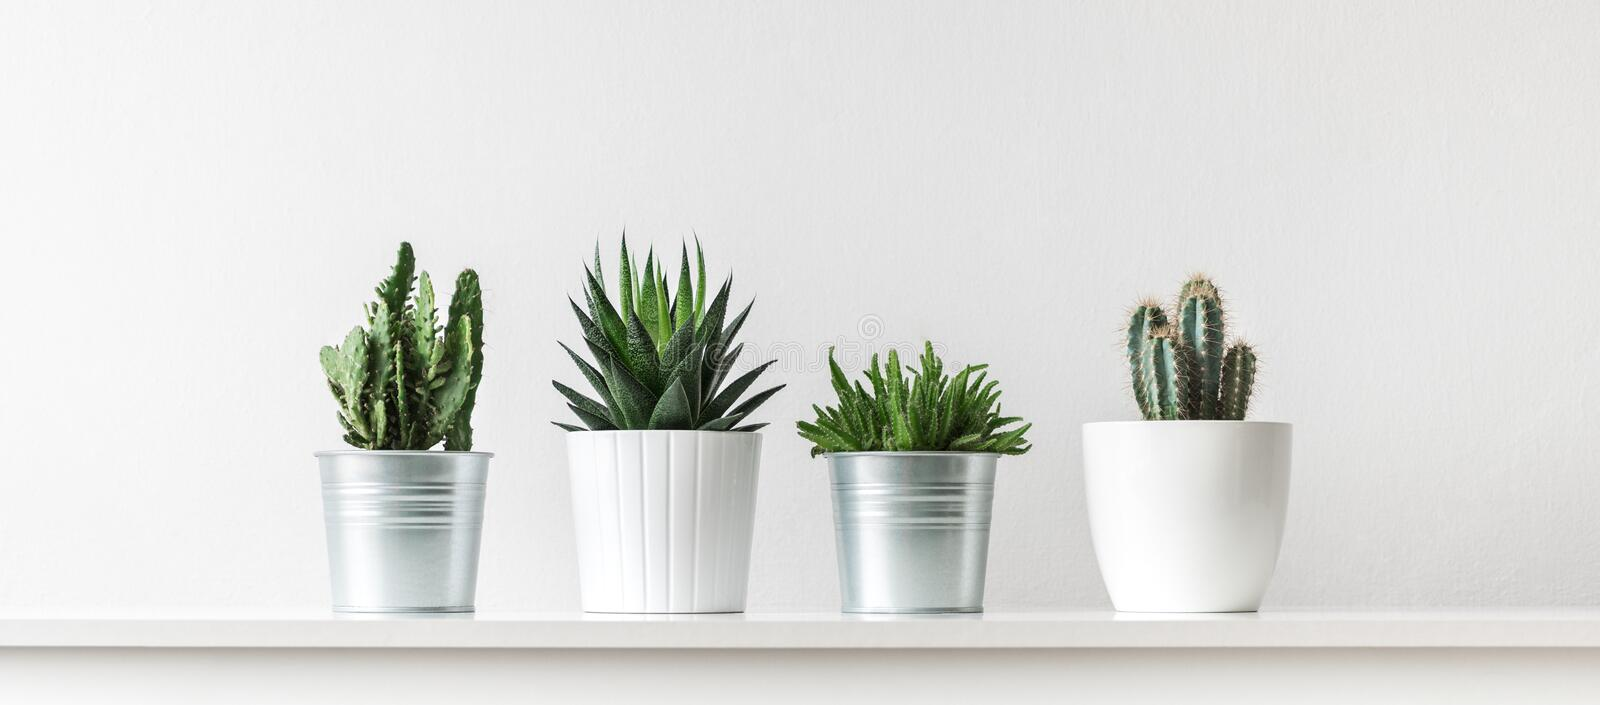 Collection of various cactus and succulent plants in different pots. Potted cactus house plants on white shelf. Collection of various cactus and succulent royalty free stock image